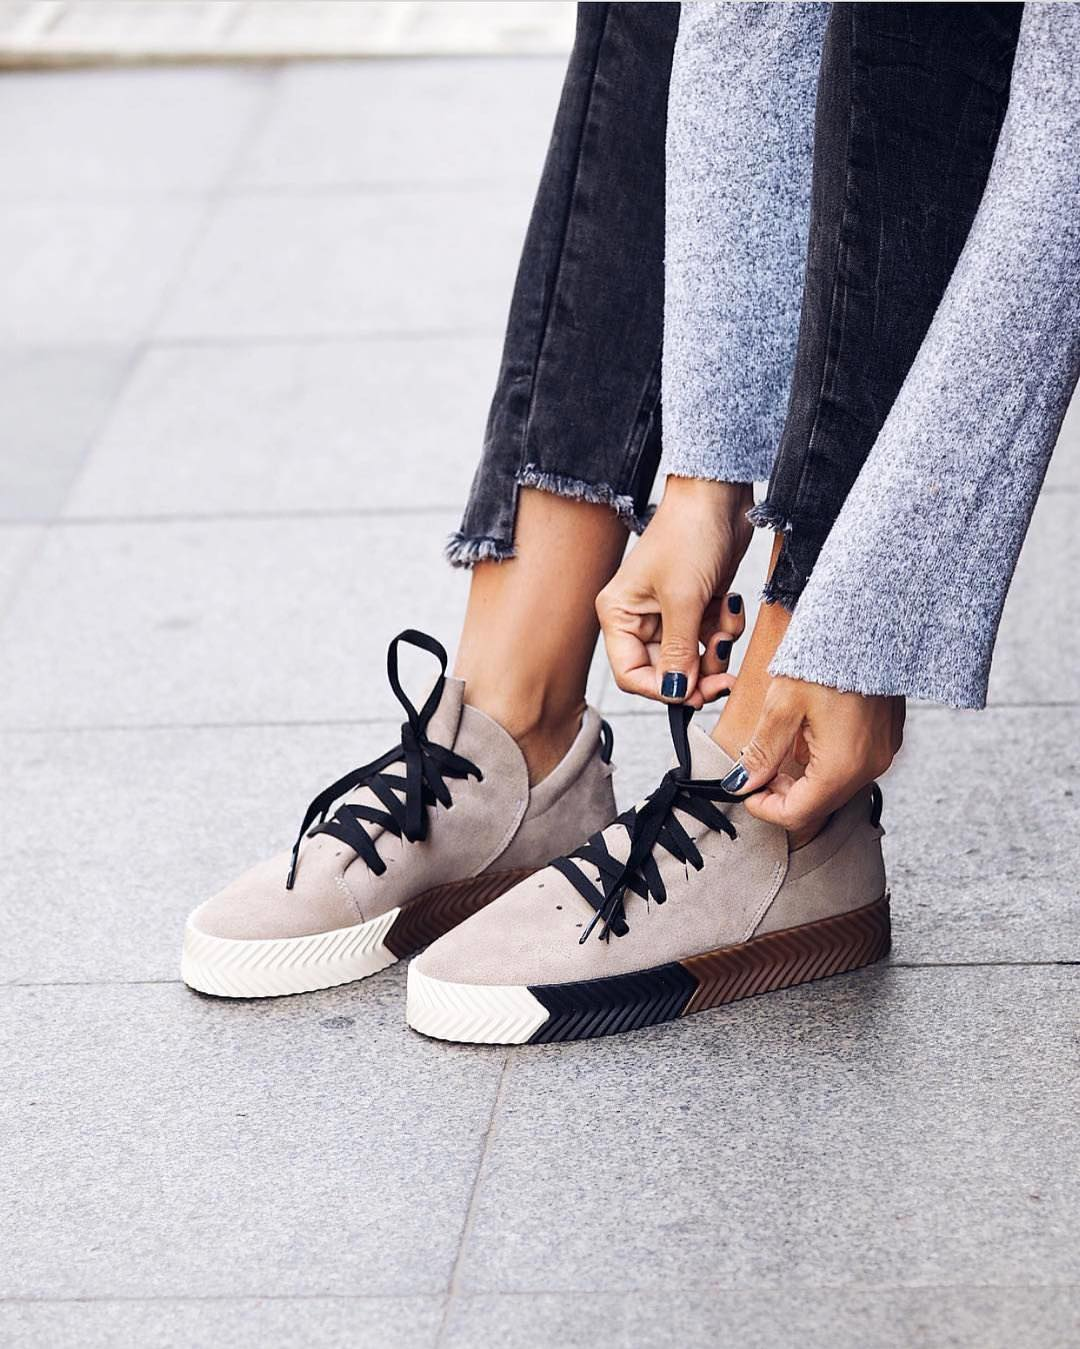 Ash Grey Slip On Sneakers With Black Laces Are For Spring 2021